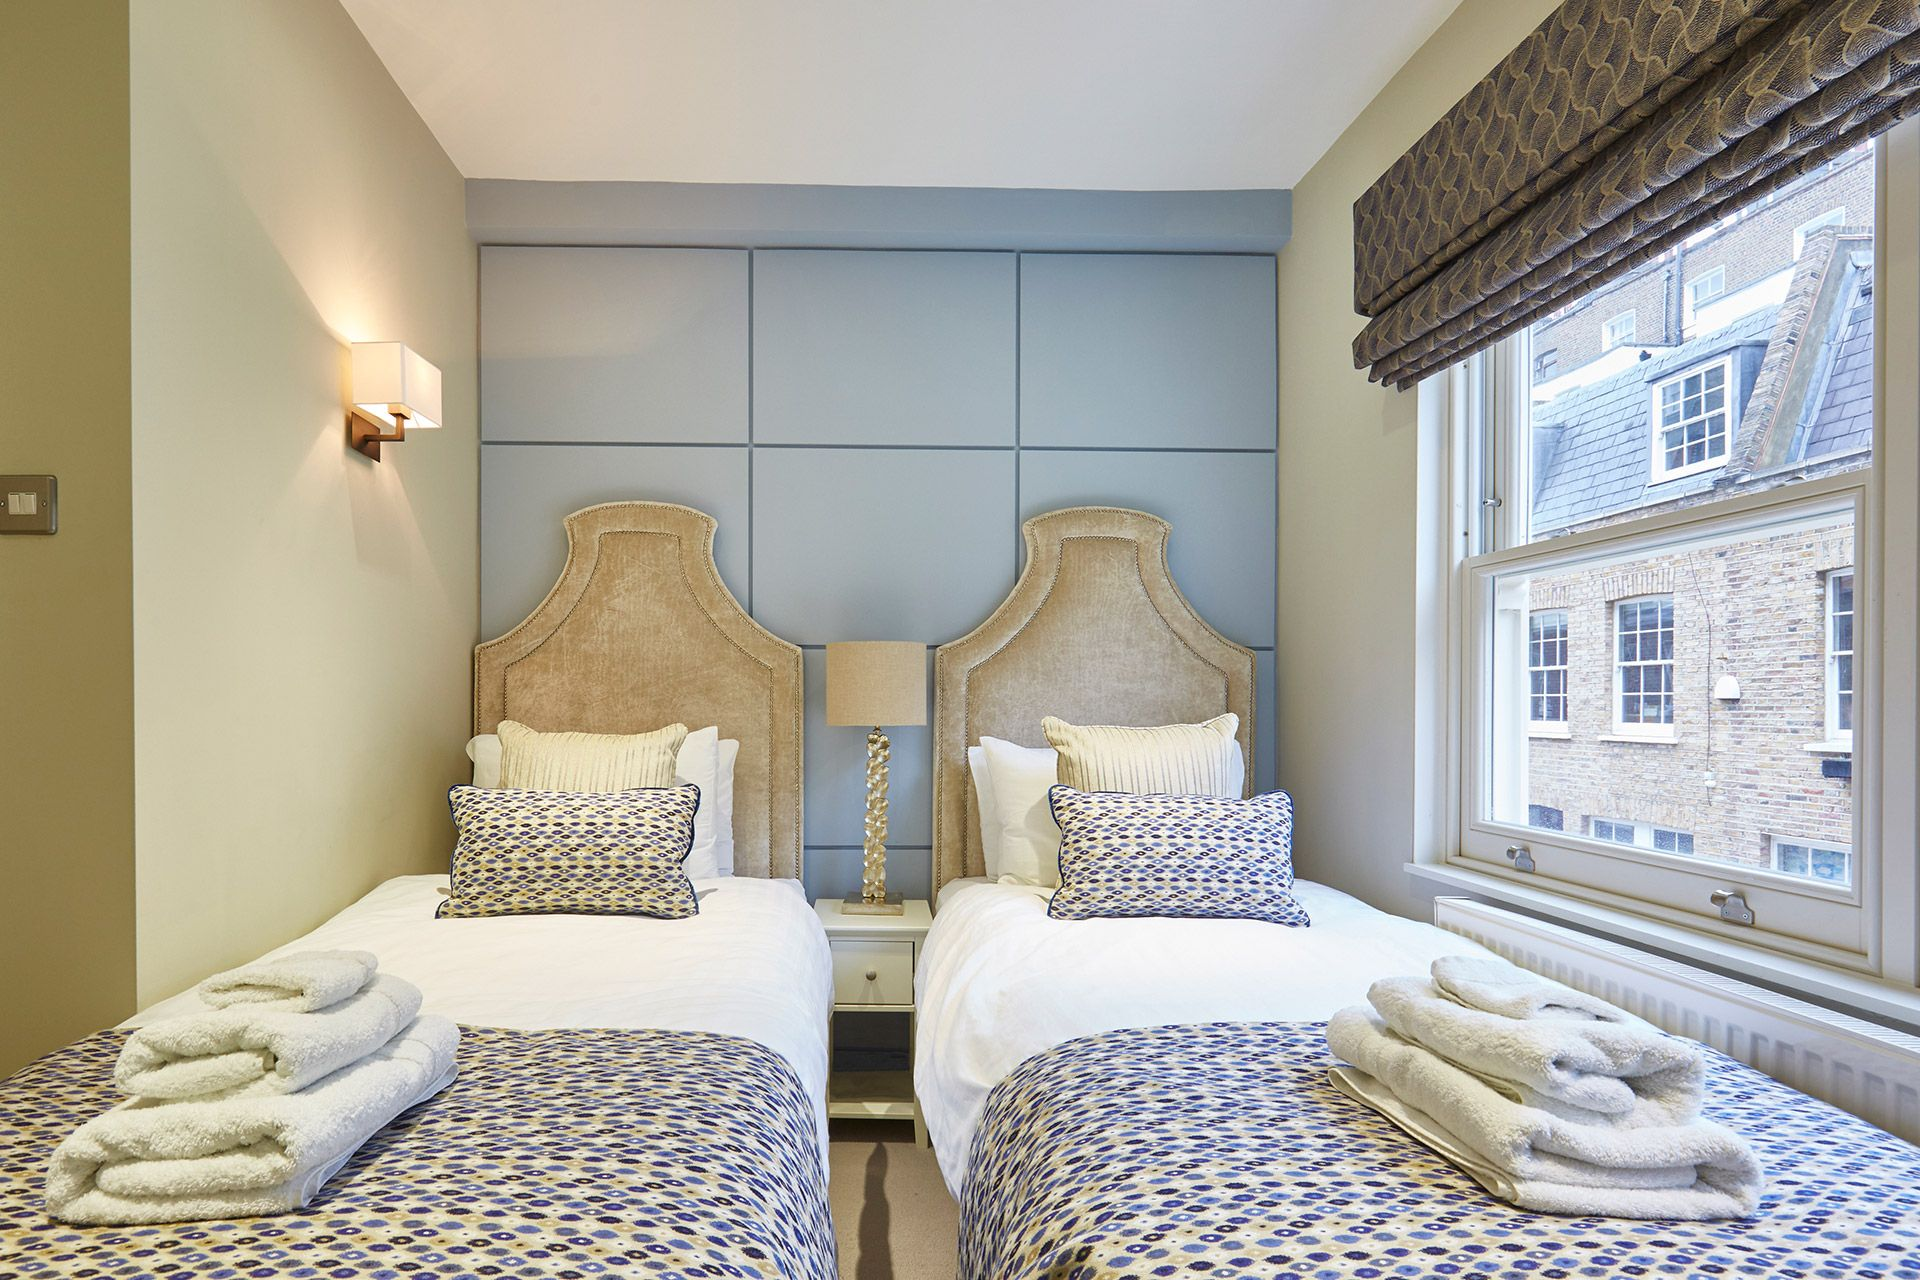 Second bedroom with two single beds in the Danebury vacation rental offered by London Perfect